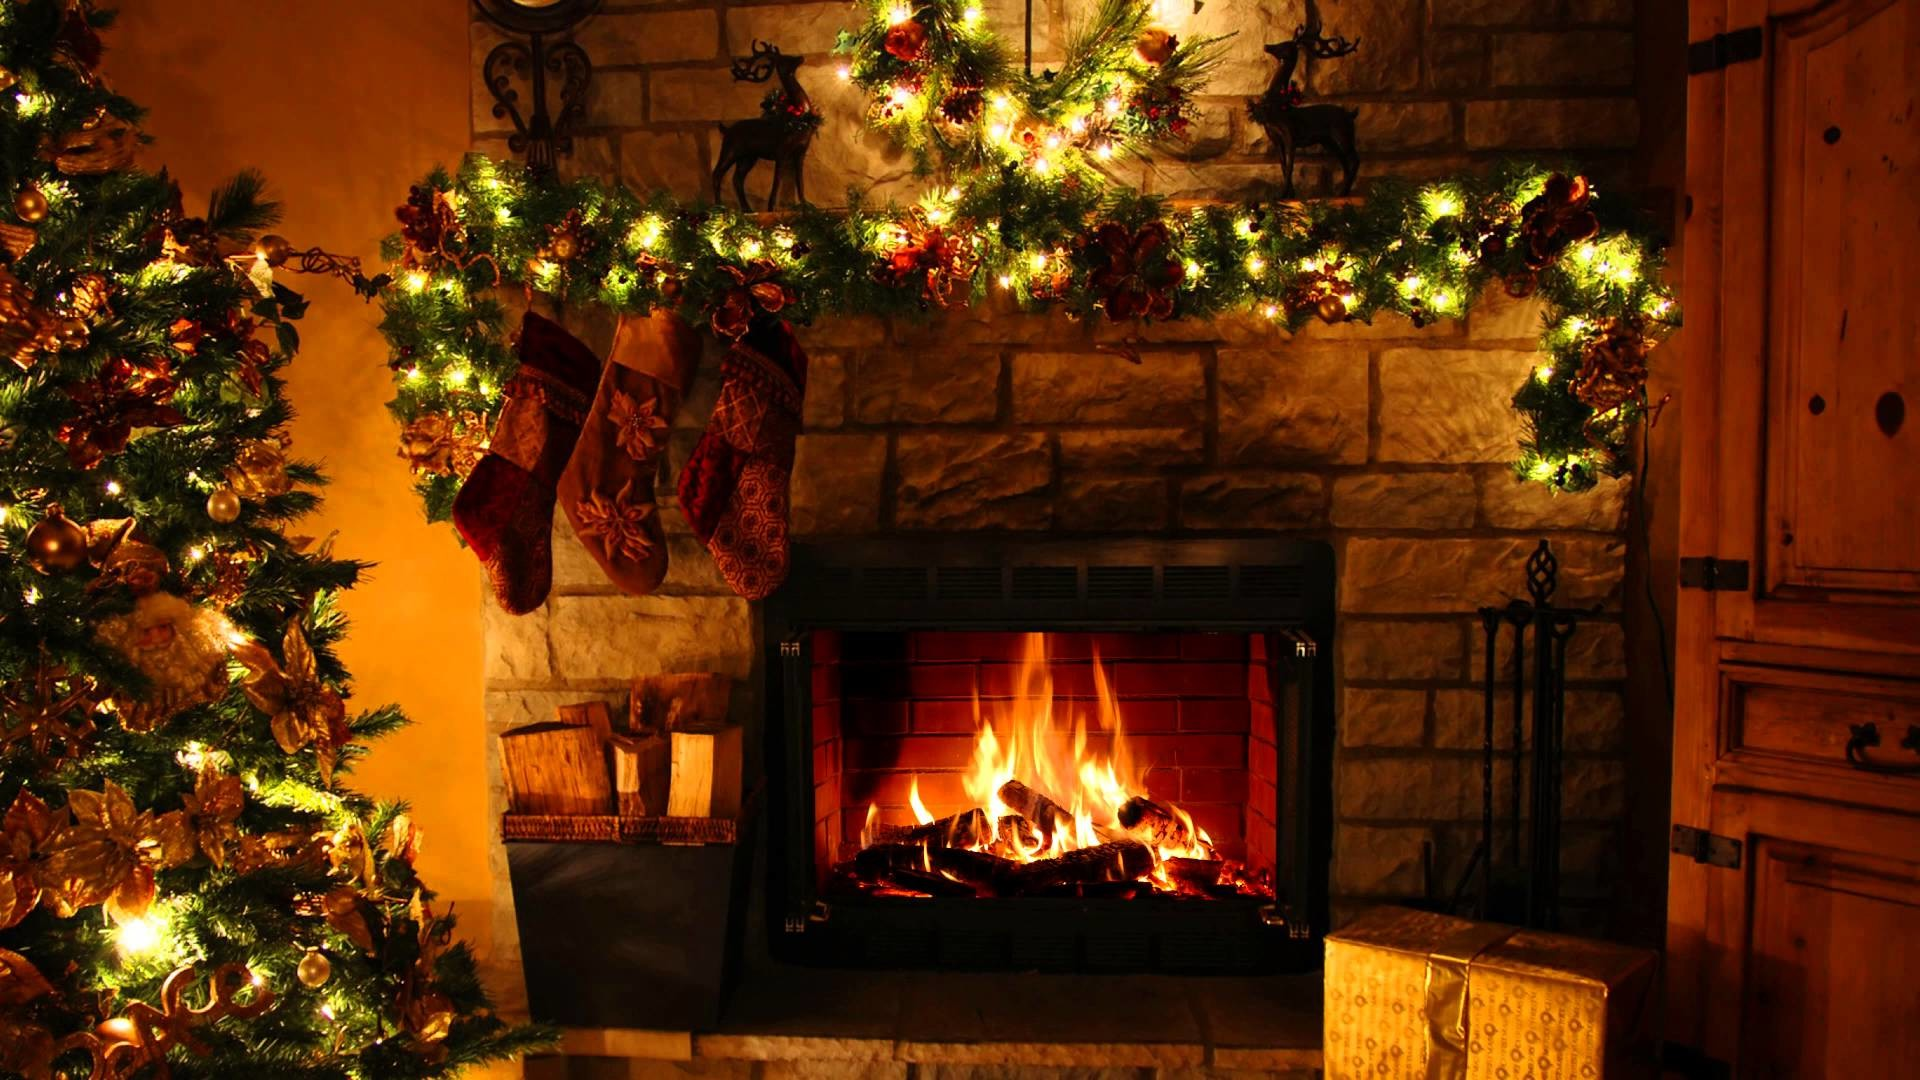 Falling Snow Wallpaper Animated Iphone Christmas Fireplace Wallpaper 57 Images